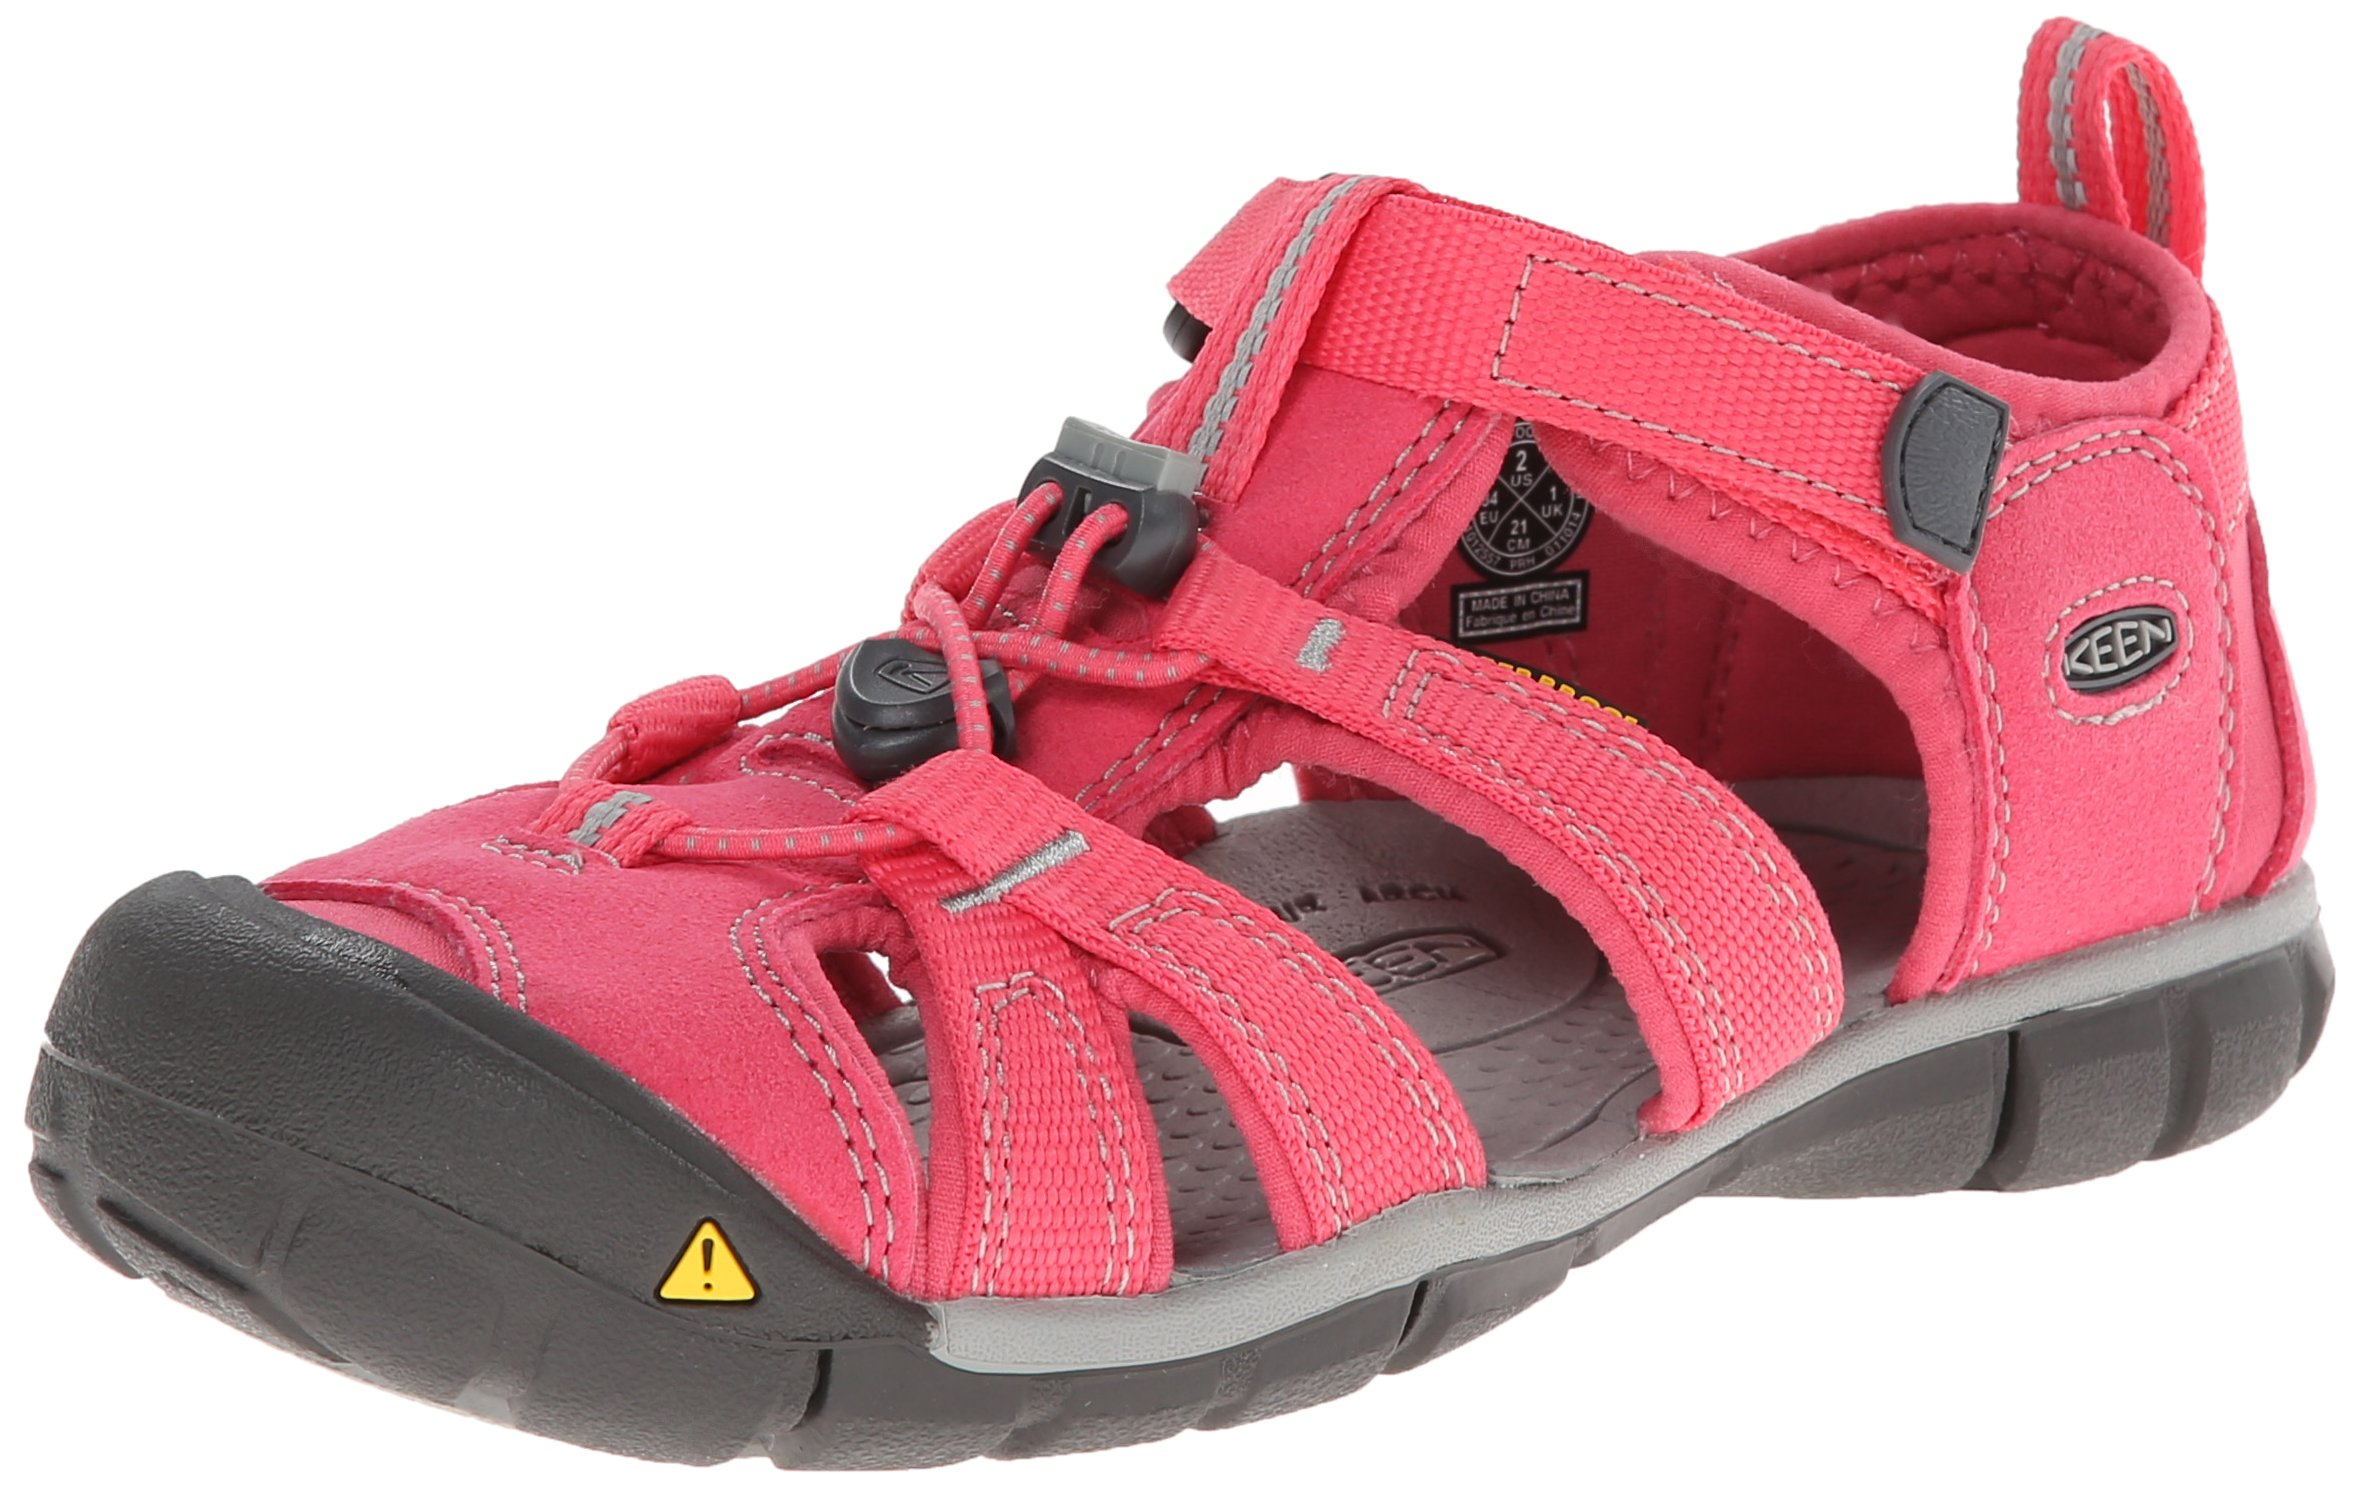 KEEN Seacamp II CNX Sandal (Toddler/Little Kid/Big Kid), HONEYSUCKLE/NEUTRAL GRA, 5 M US Big Kid by KEEN